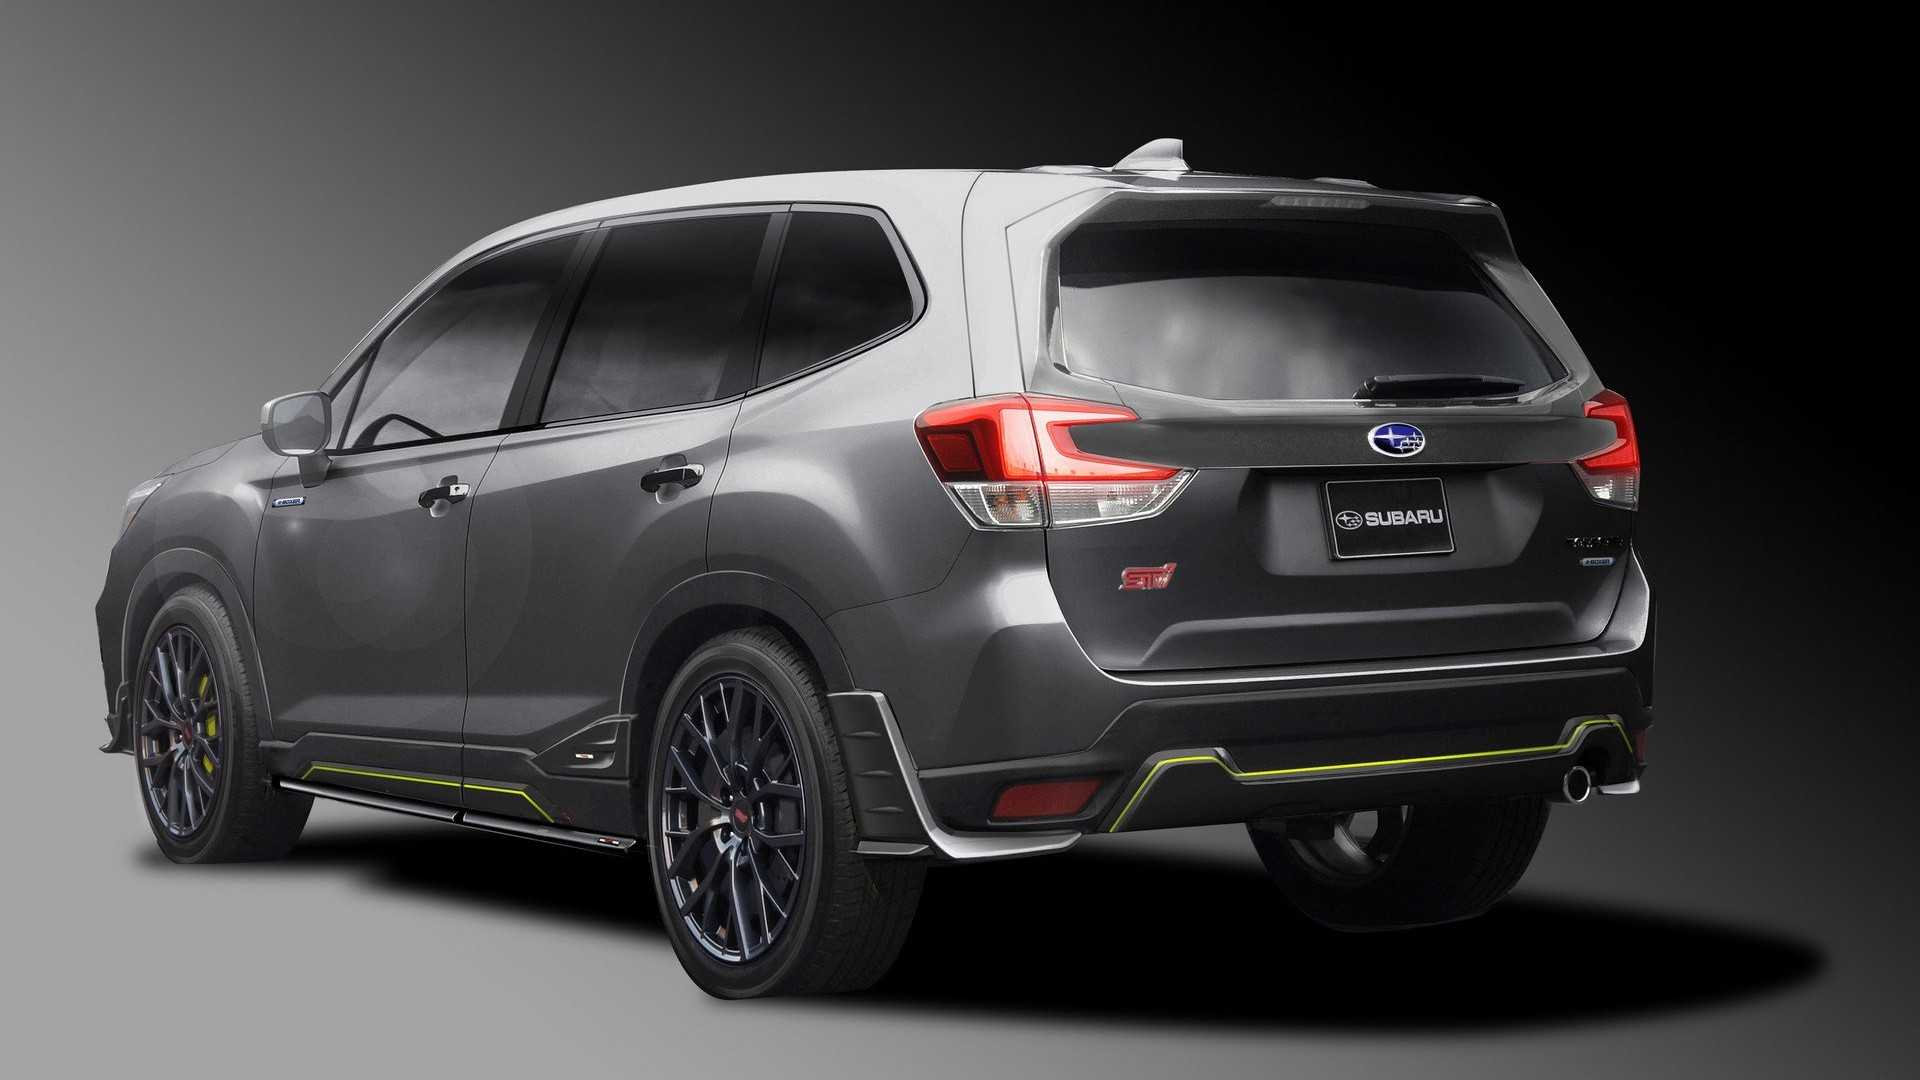 49 The 2019 Subaru Hatchback Sti Prices